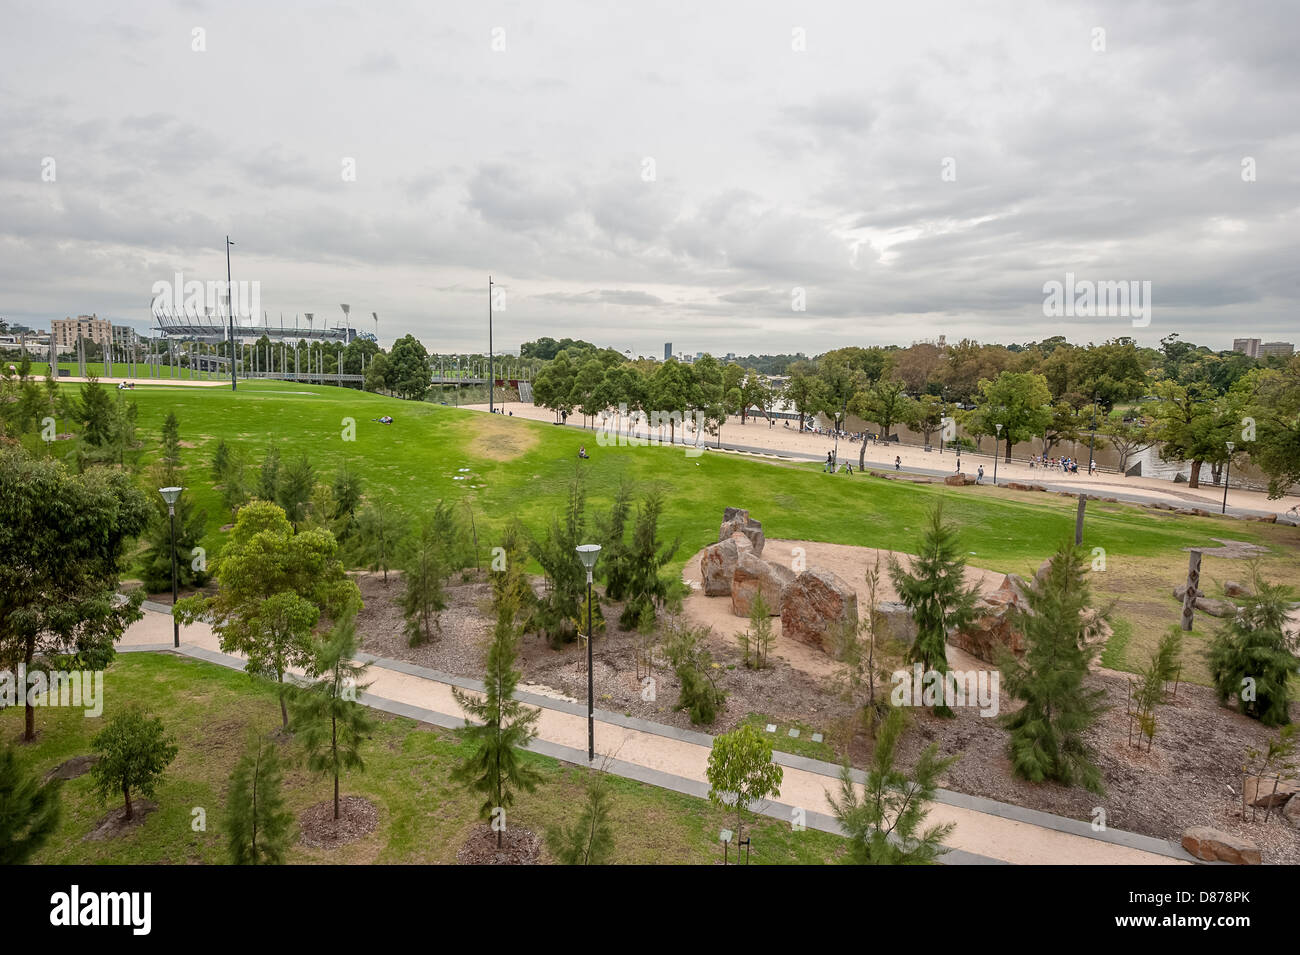 Birrarung Marr, an inner city park in downtown Melbourne next to the Yarra River. - Stock Image